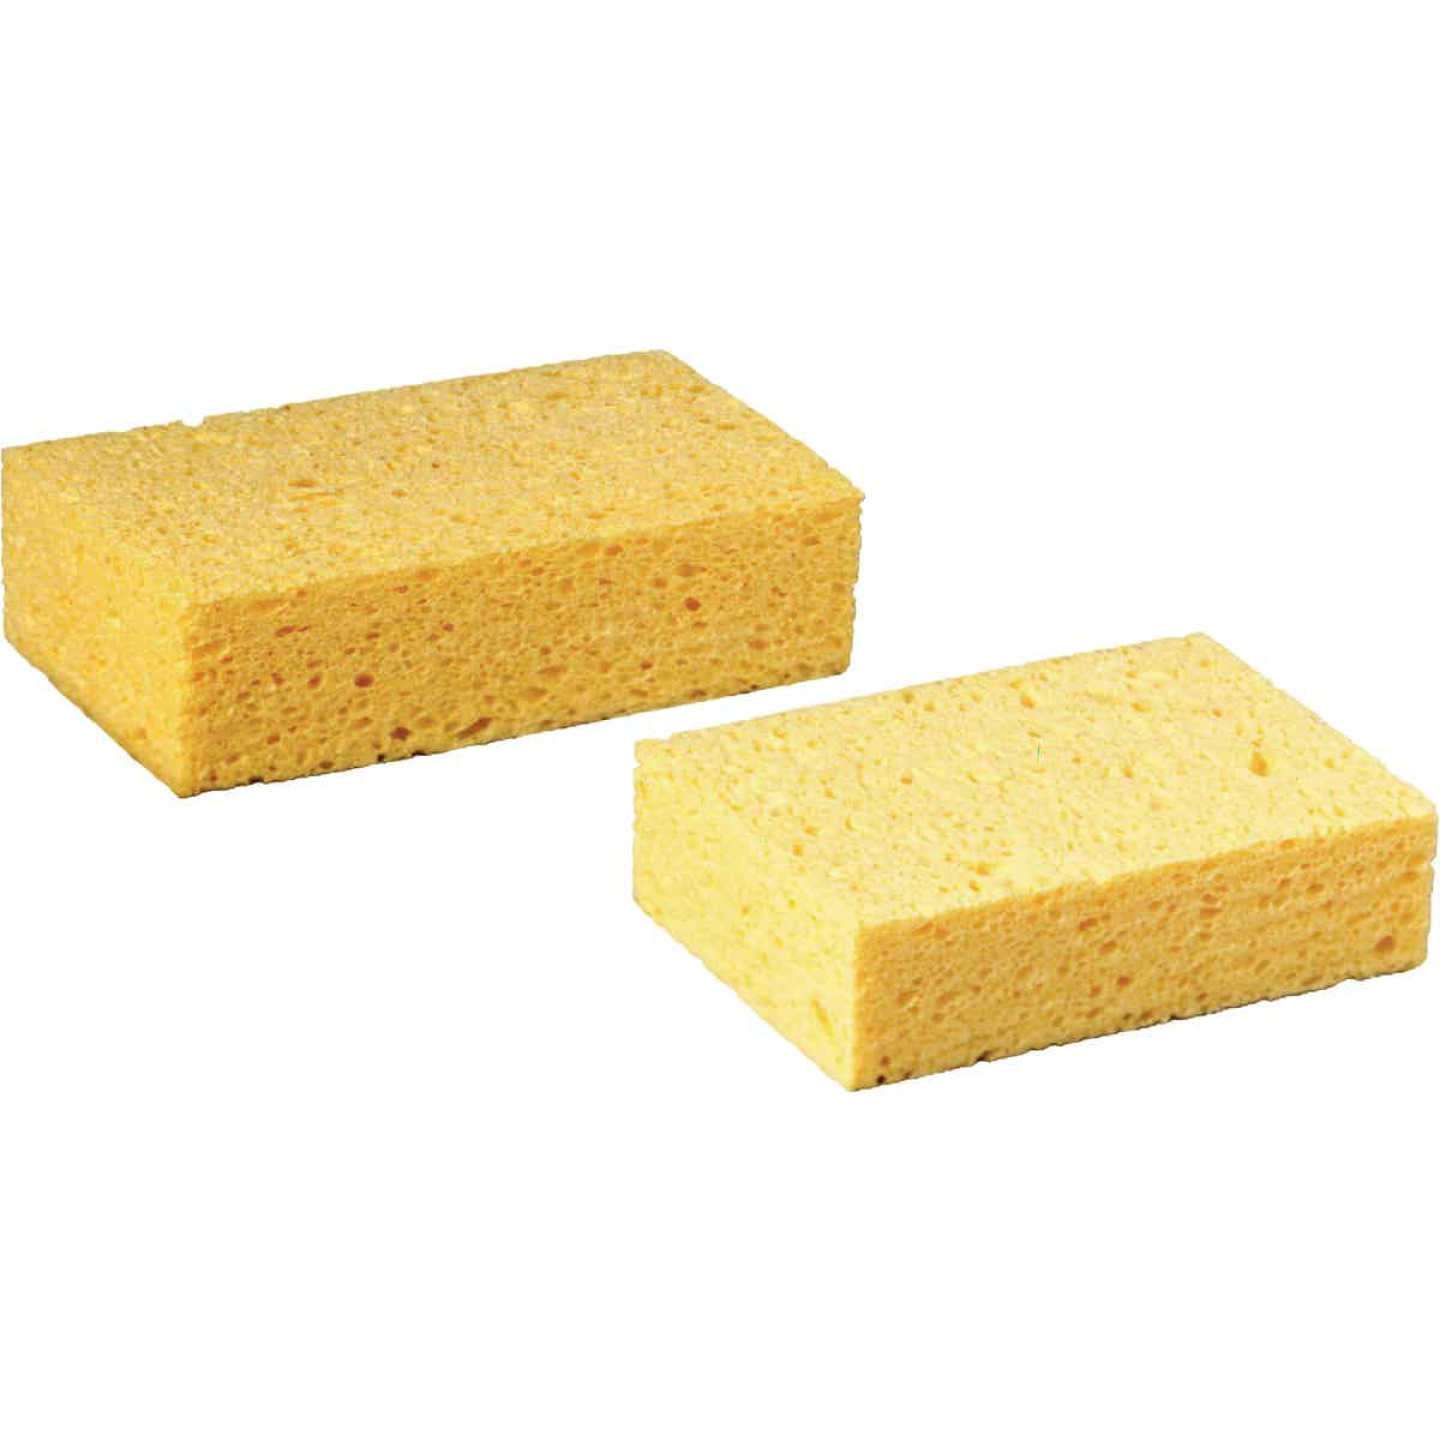 3M 7.5 In. x 4.3 In. Yellow Sponge Image 2